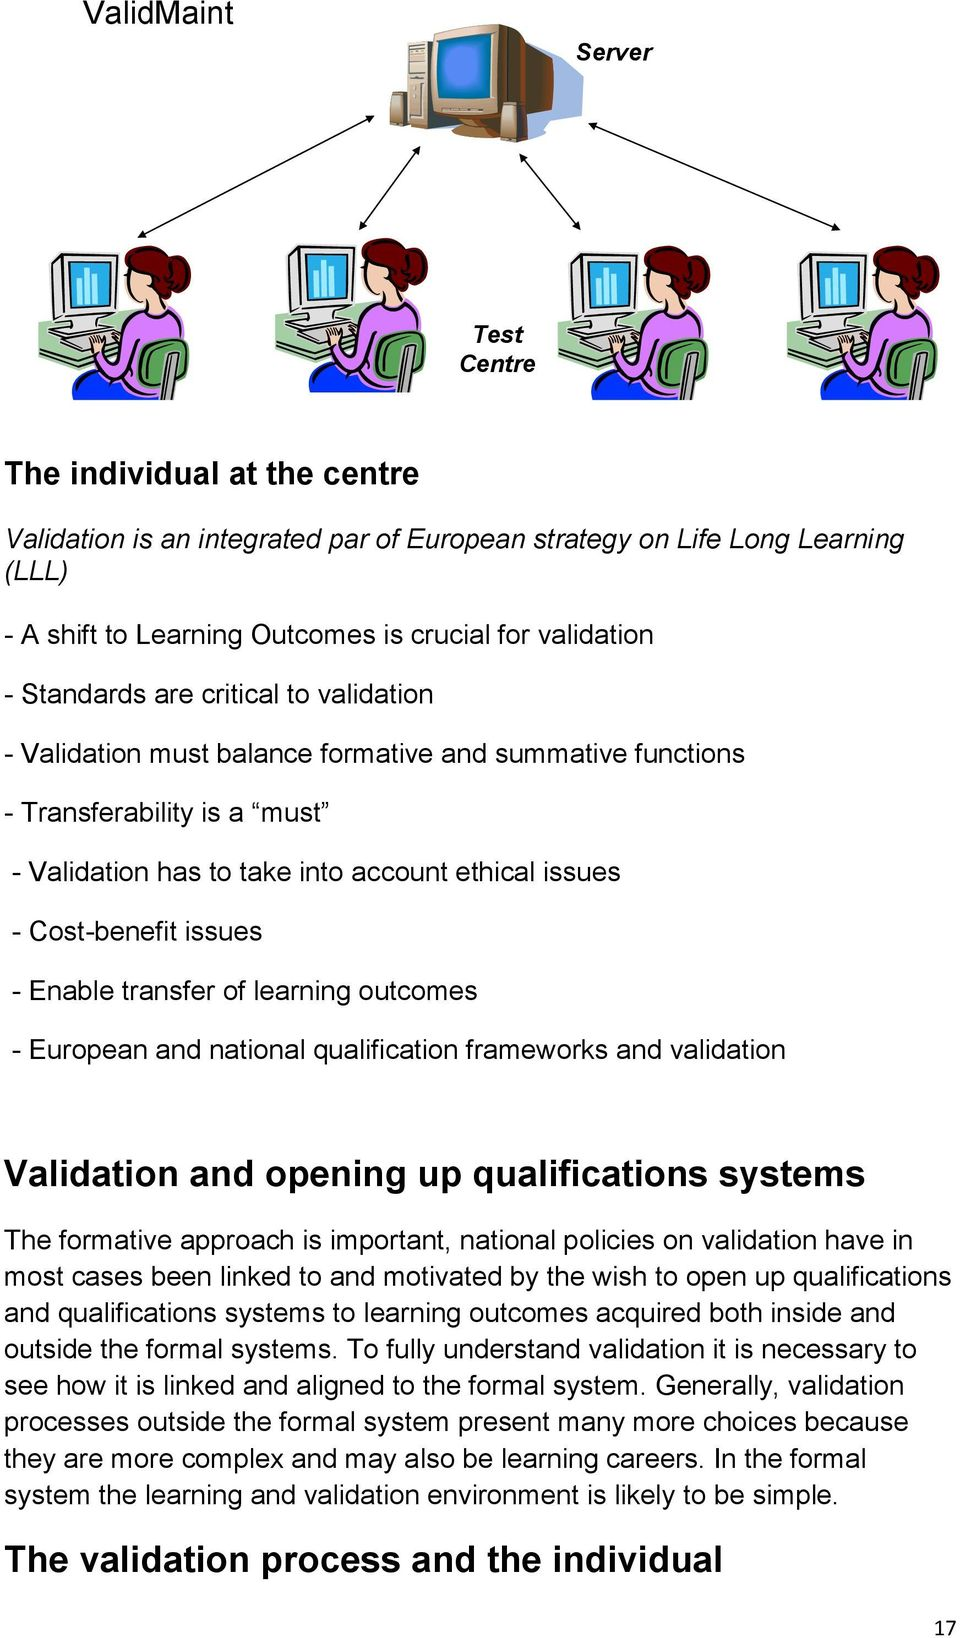 - Enable transfer of learning outcomes - European and national qualification frameworks and validation Validation and opening up qualifications systems The formative approach is important, national